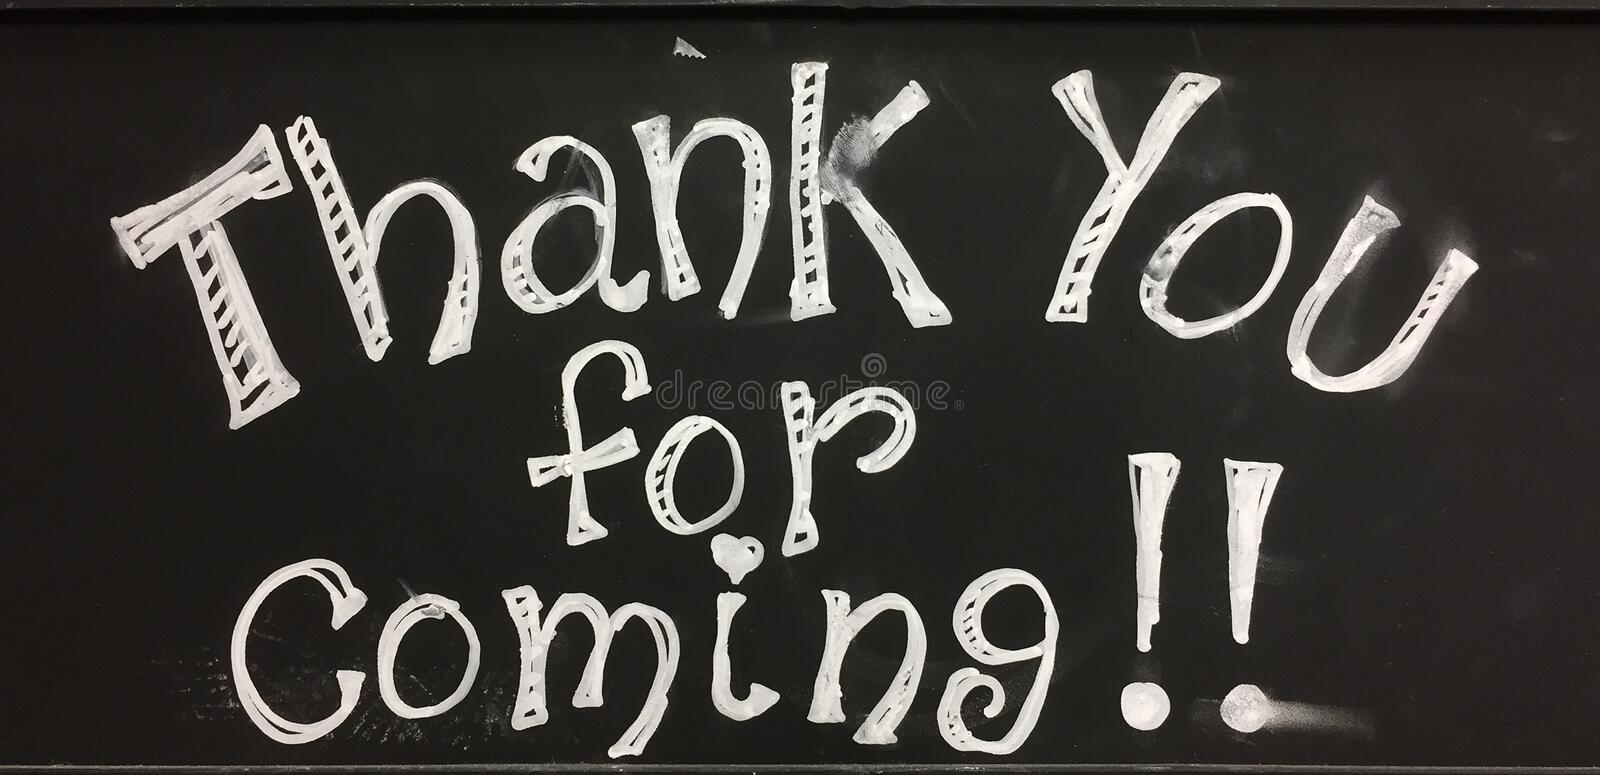 Download Thank you for coming sign stock image. Image of symbol - 92495887